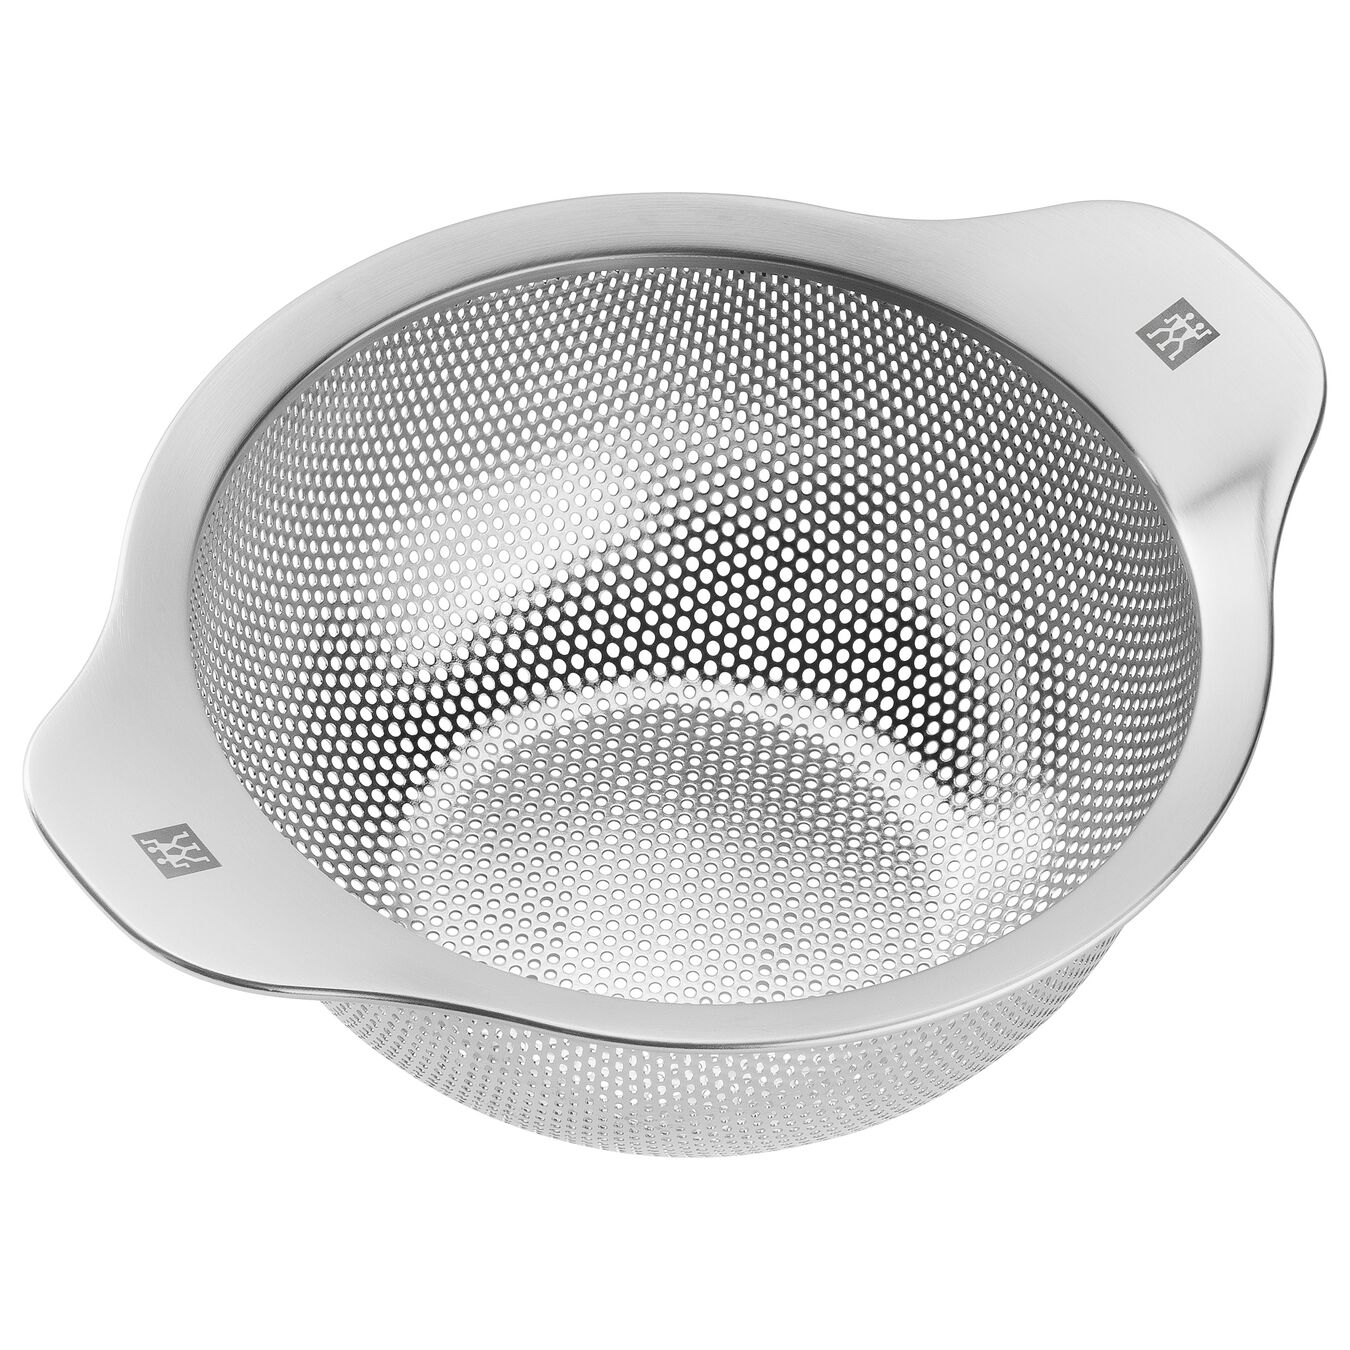 6-inch Colander, 18/10 Stainless Steel ,,large 2